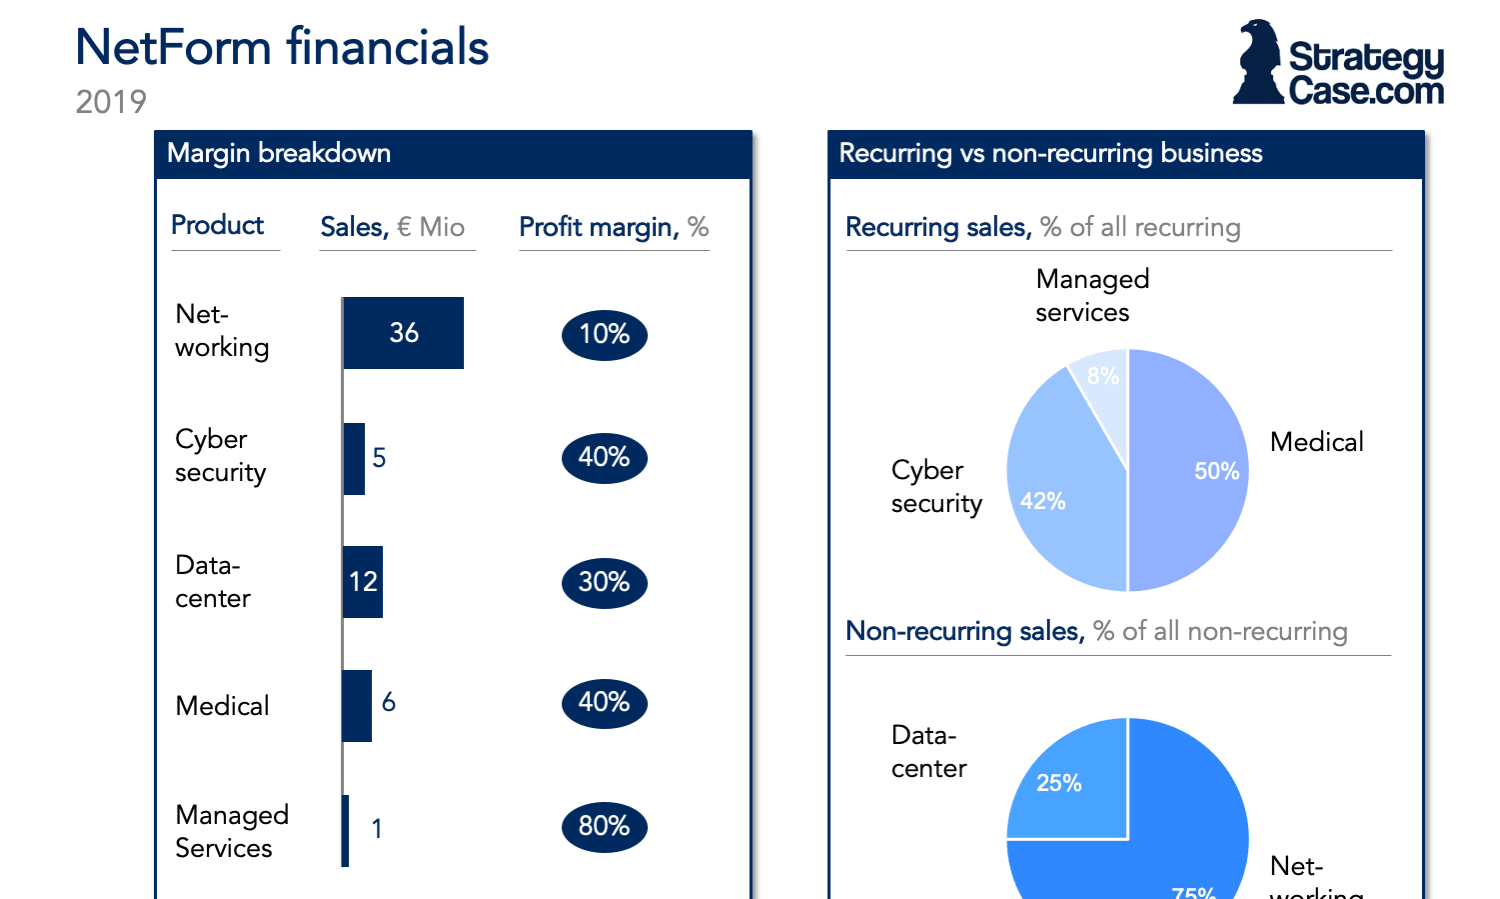 the image shows an example of a mckinsey case interview chart